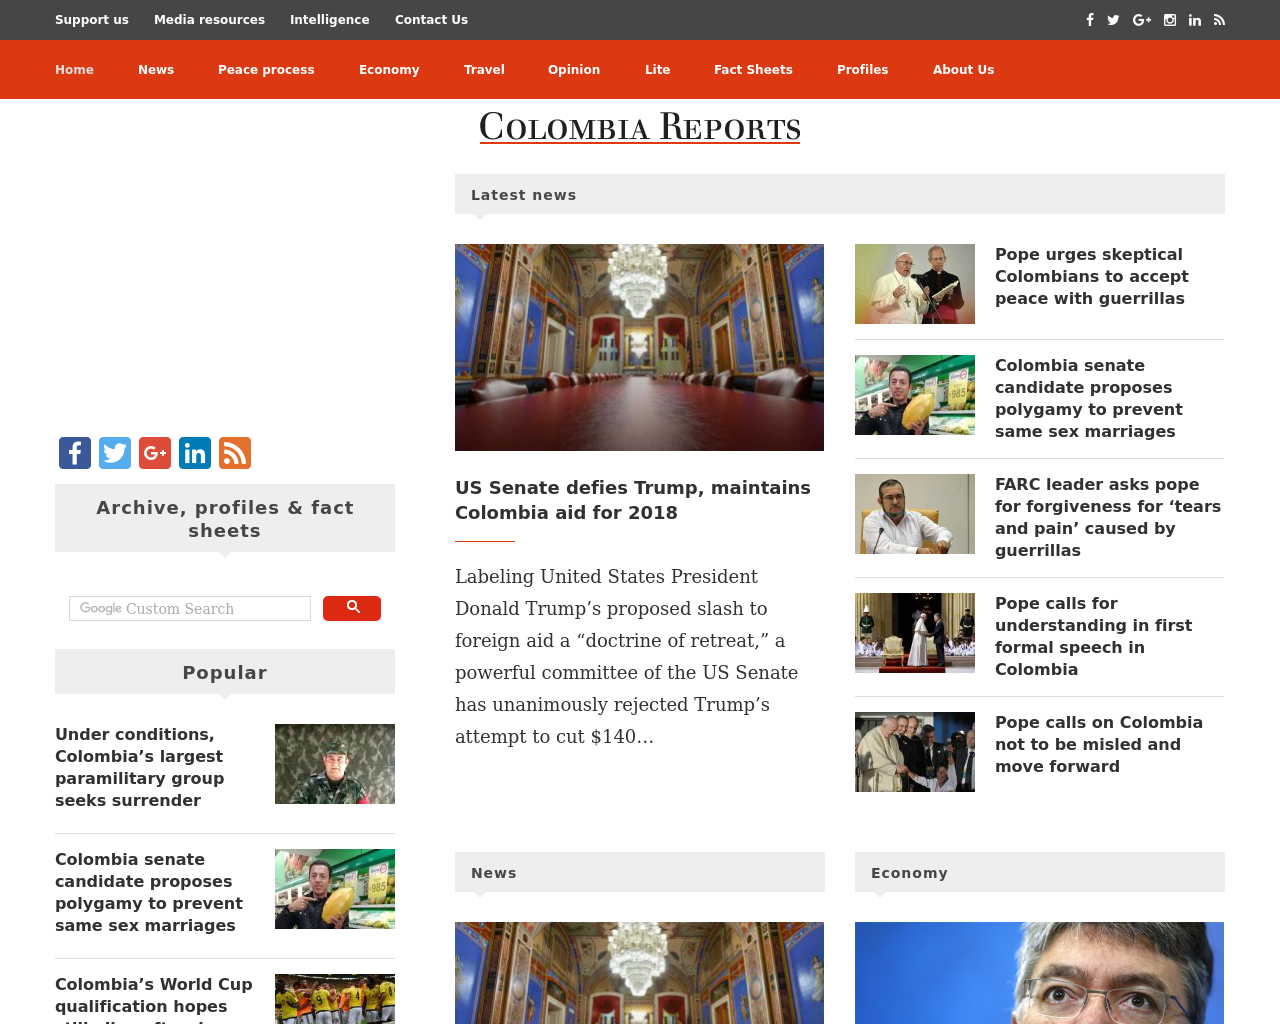 Colombia-Reports-Advertising-Reviews-Pricing